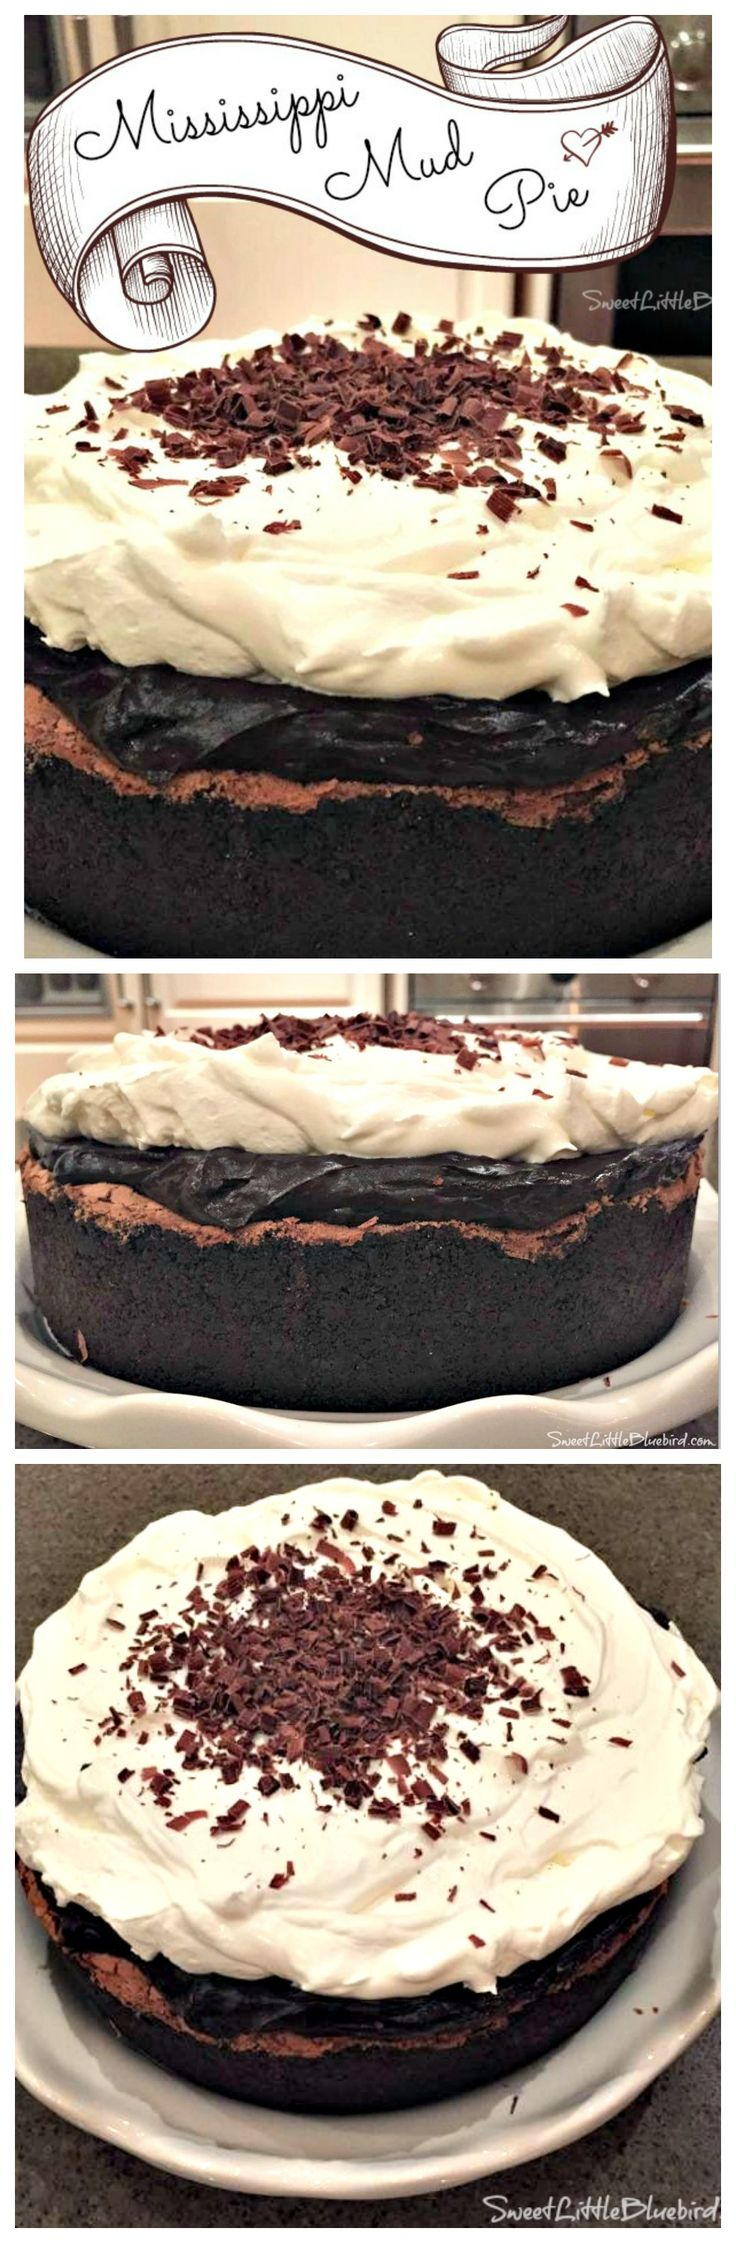 MISSISSIPPI MUD PIE {also known as Muddy Mississippi Cake}  A flourless chocolate cake inside a cookie crust, layered with silky pudding and topped with fresh whipped cream and shaved semi-sweet chocolate.  A chocolate lover's dream!! |  SweetLittleBluebird.com